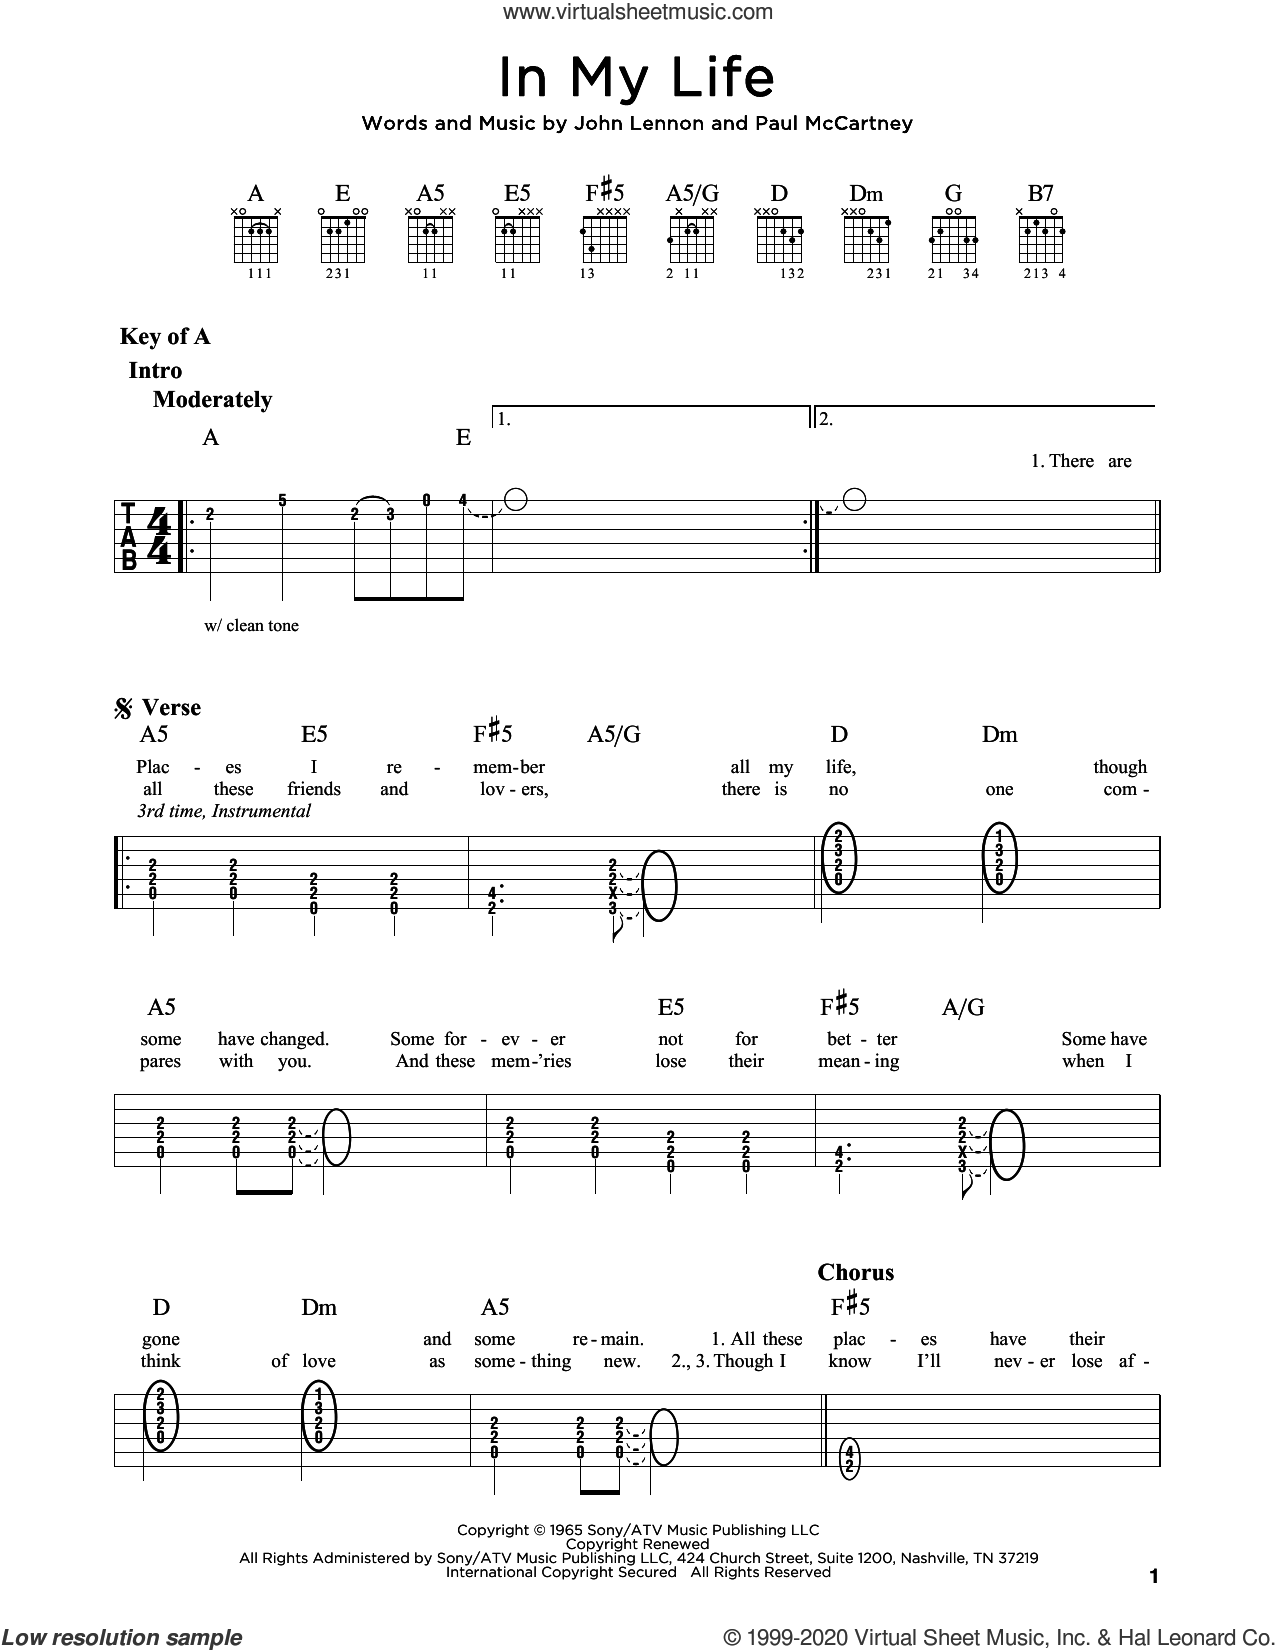 In My Life sheet music for guitar (rhythm tablature) by The Beatles, John Lennon and Paul McCartney, intermediate skill level